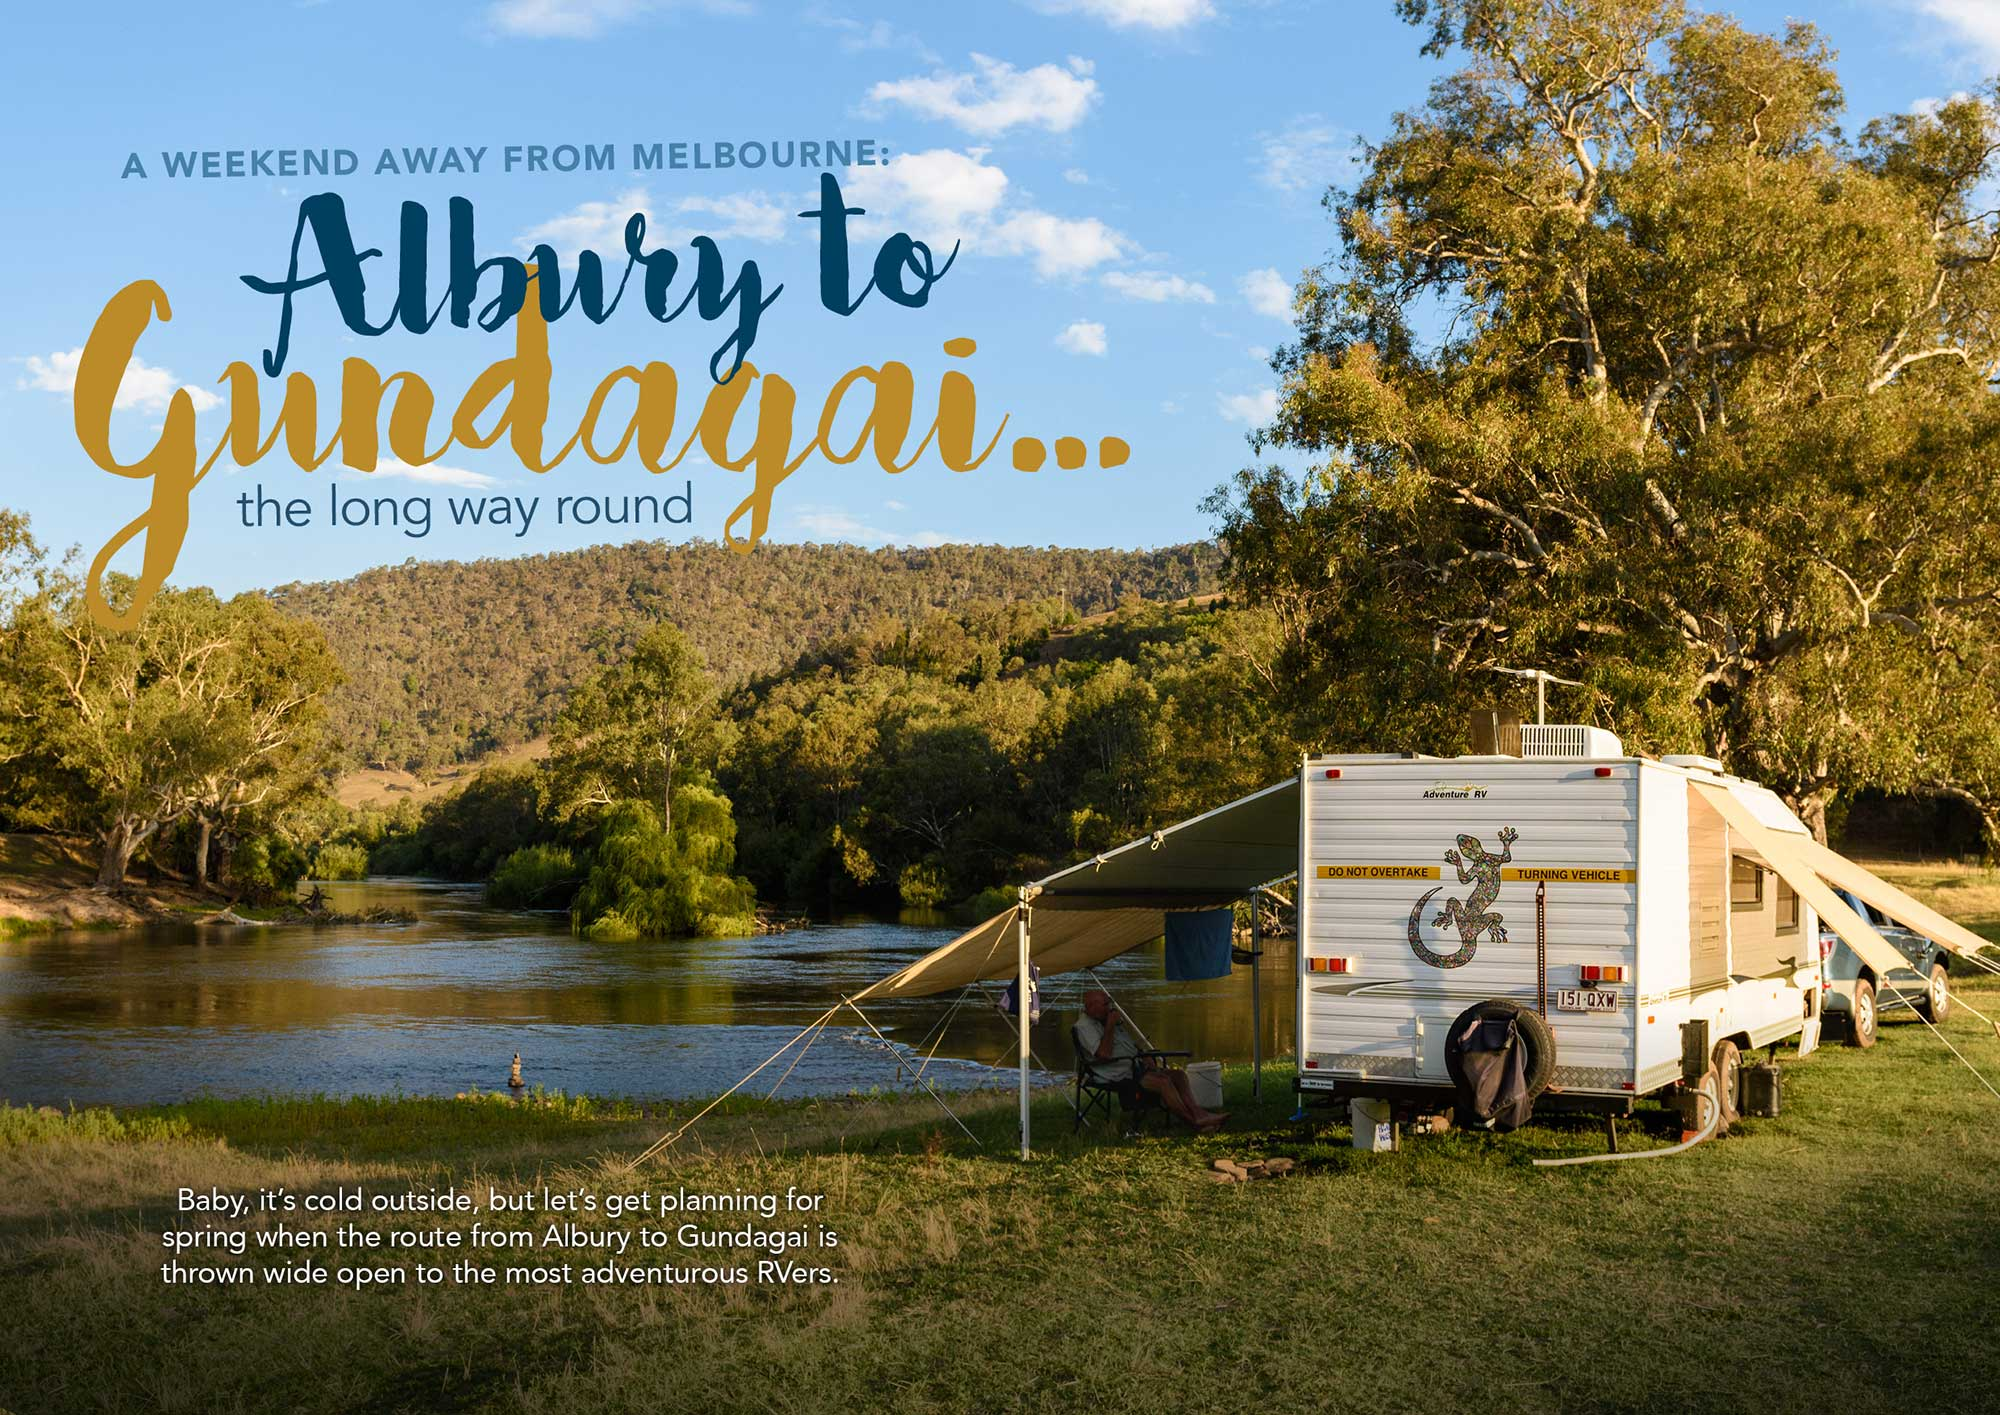 A weekend away from Melbourne: Albury to Gundagai